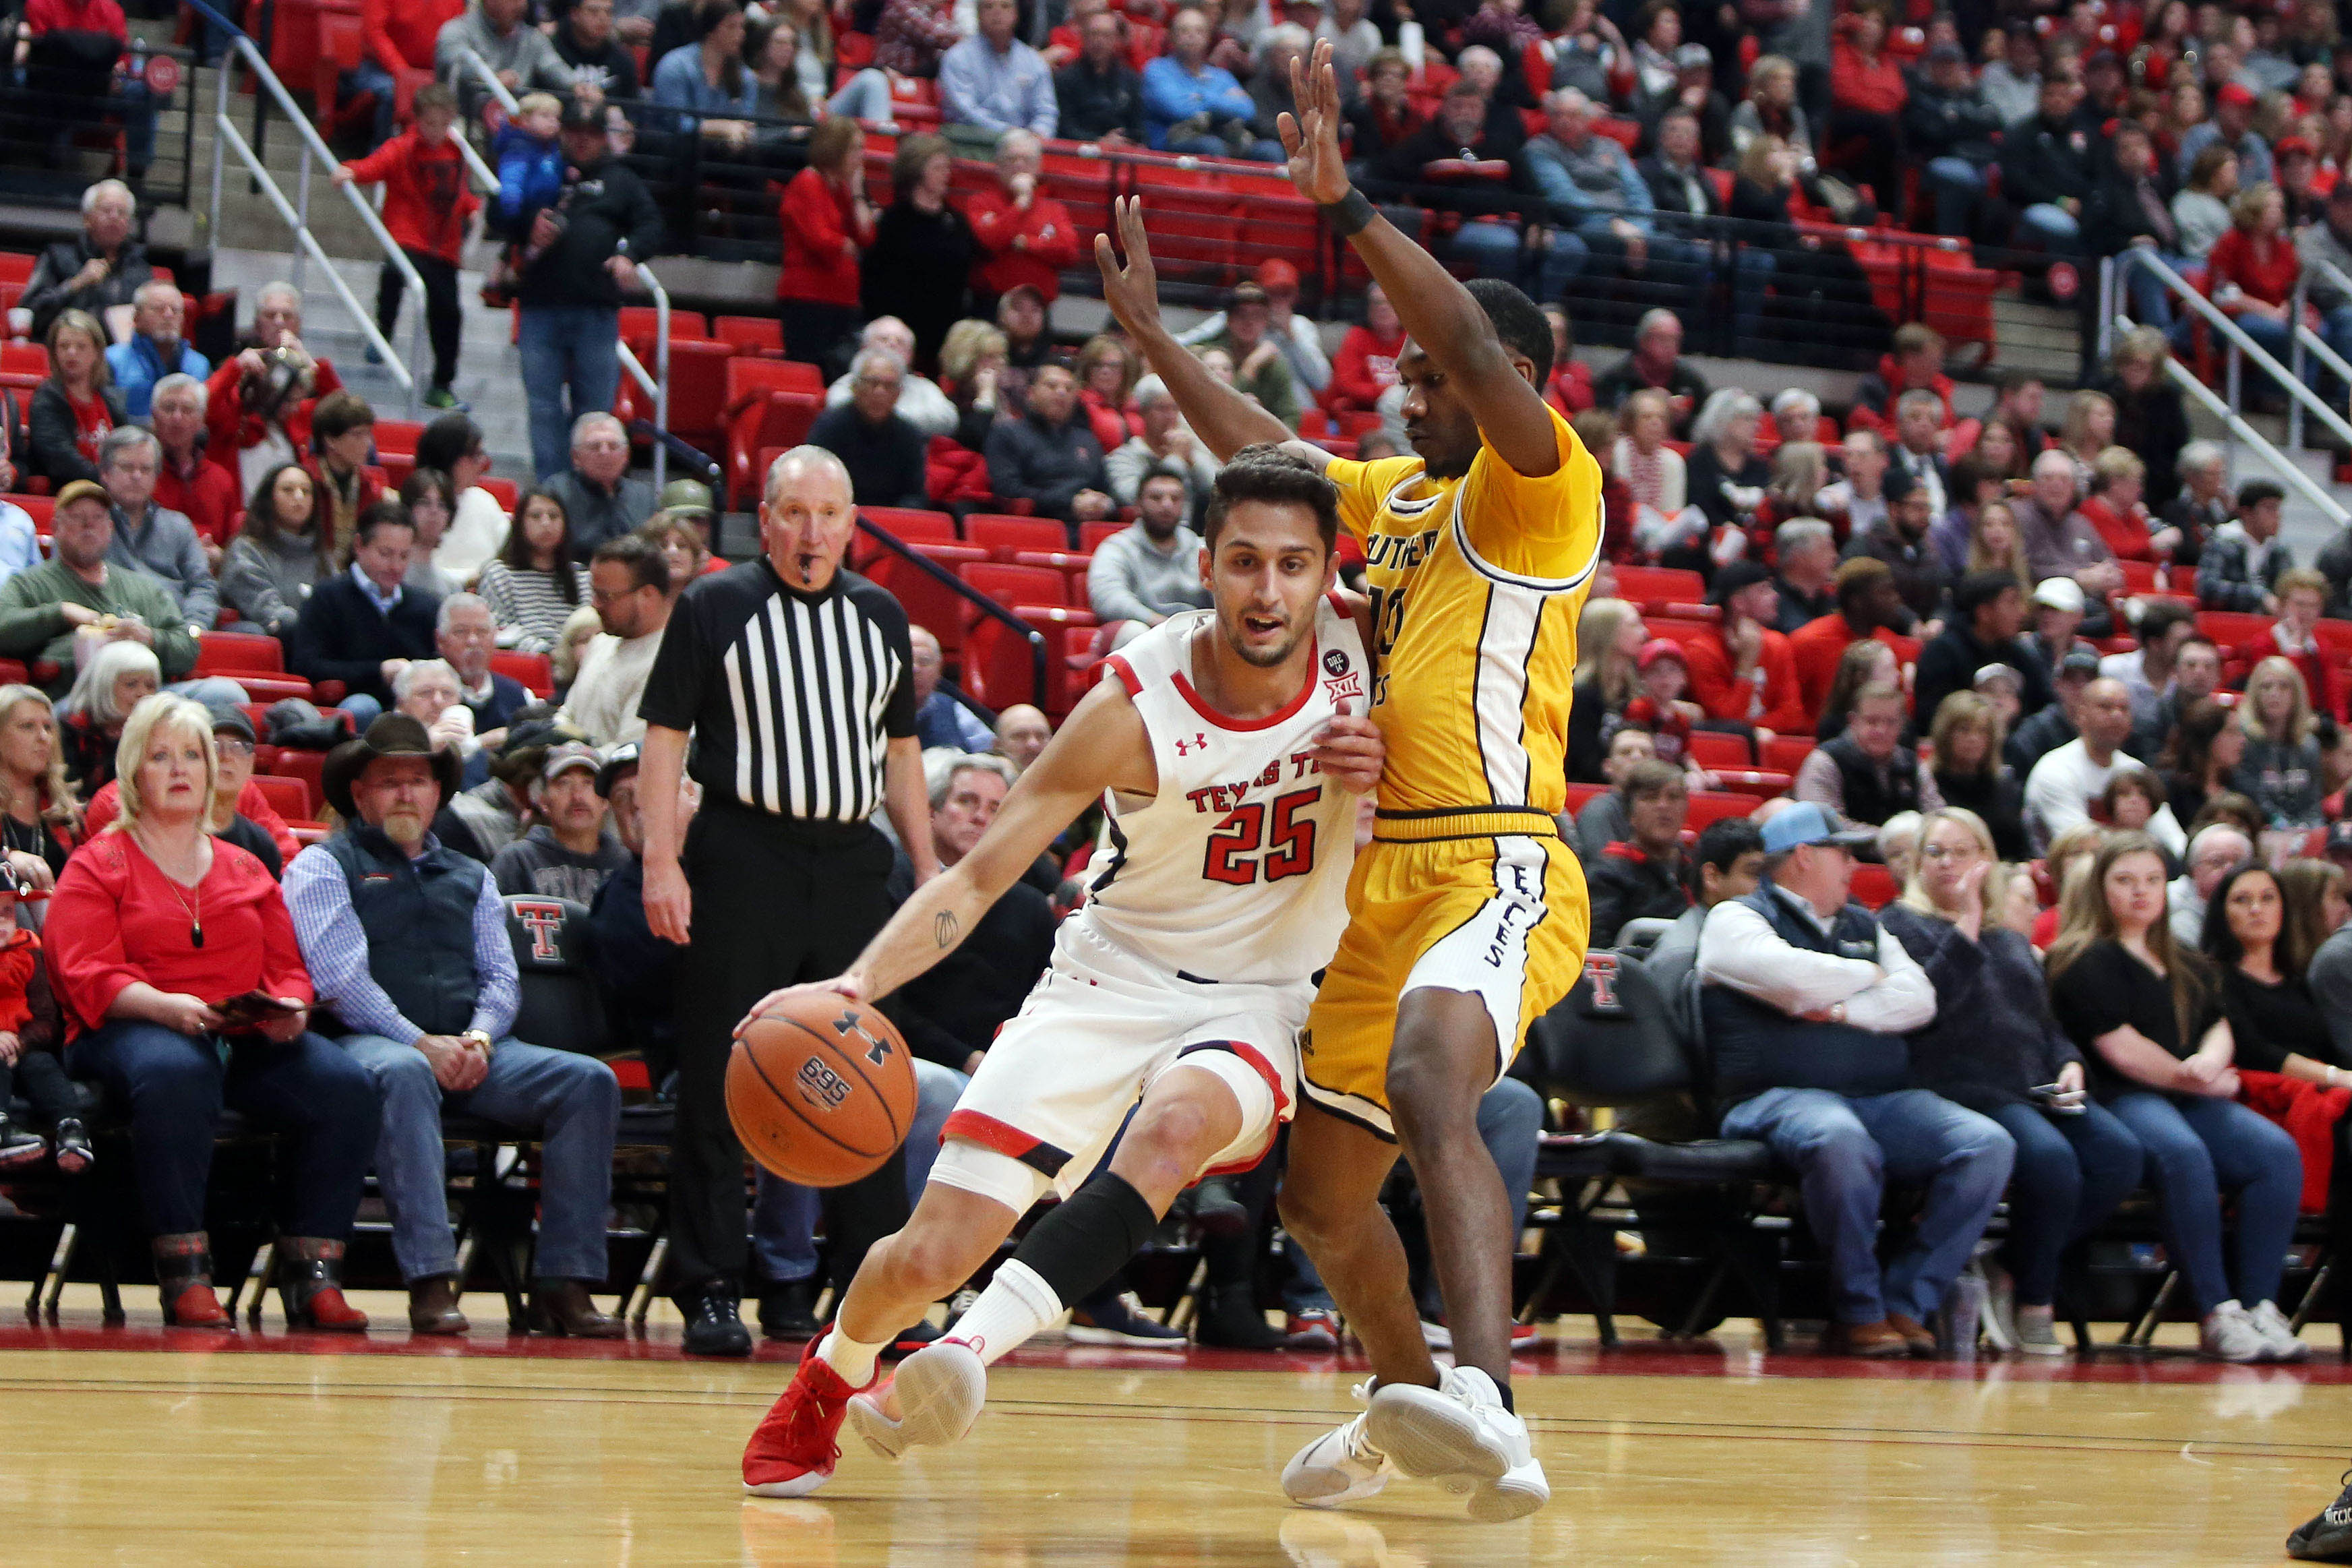 NCAA Basketball: Southern Mississippi at Texas Tech